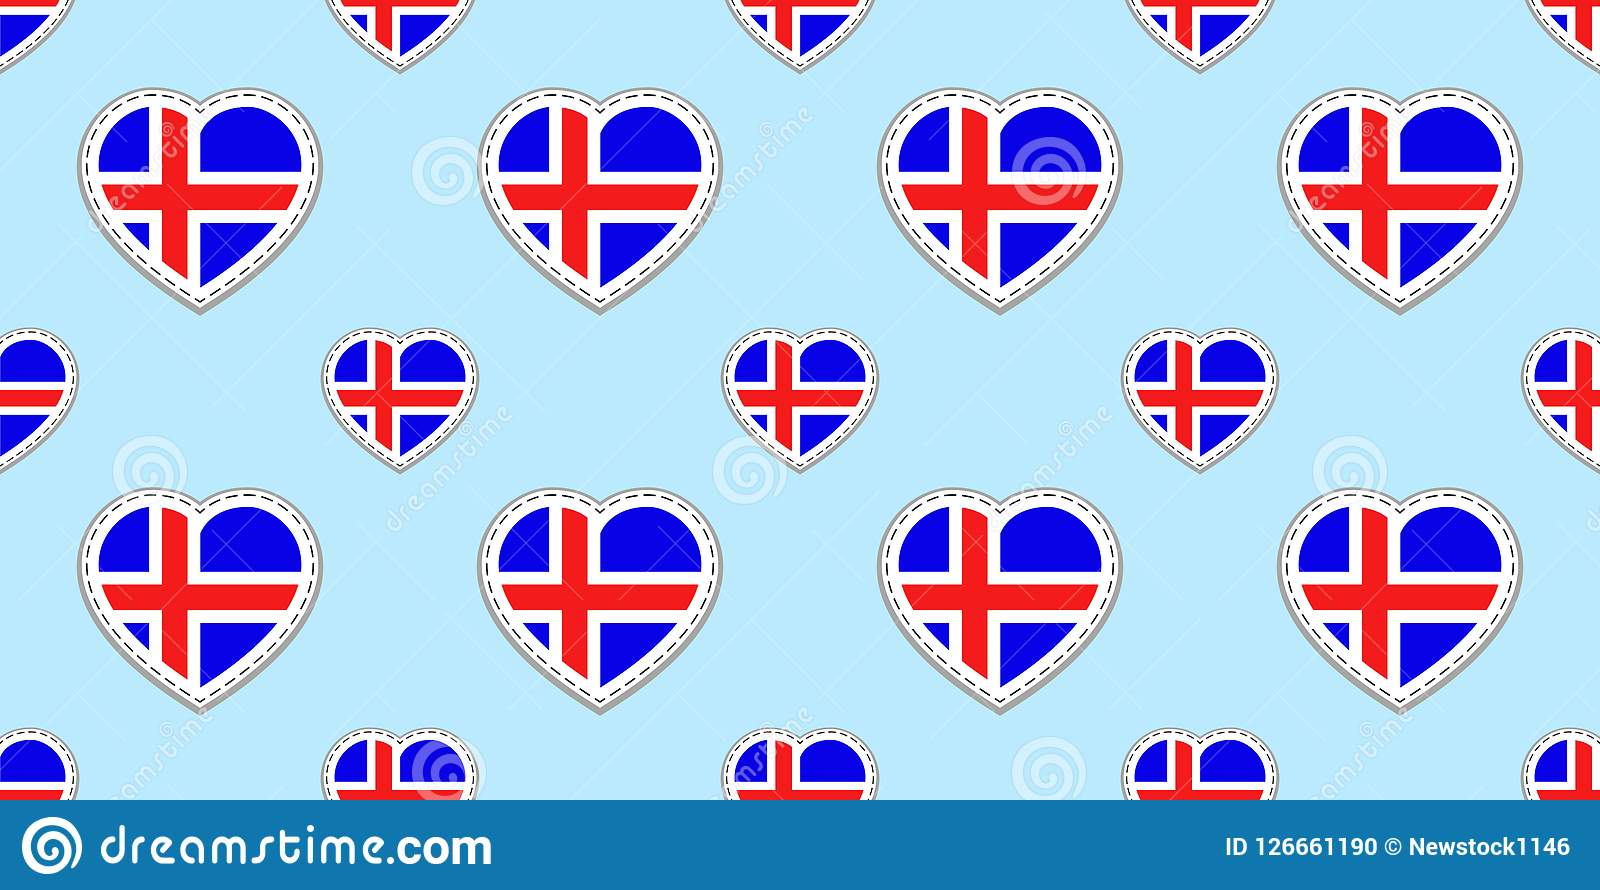 Icelandic background iceland flag seamless pattern vector stickers design love hearts symbols